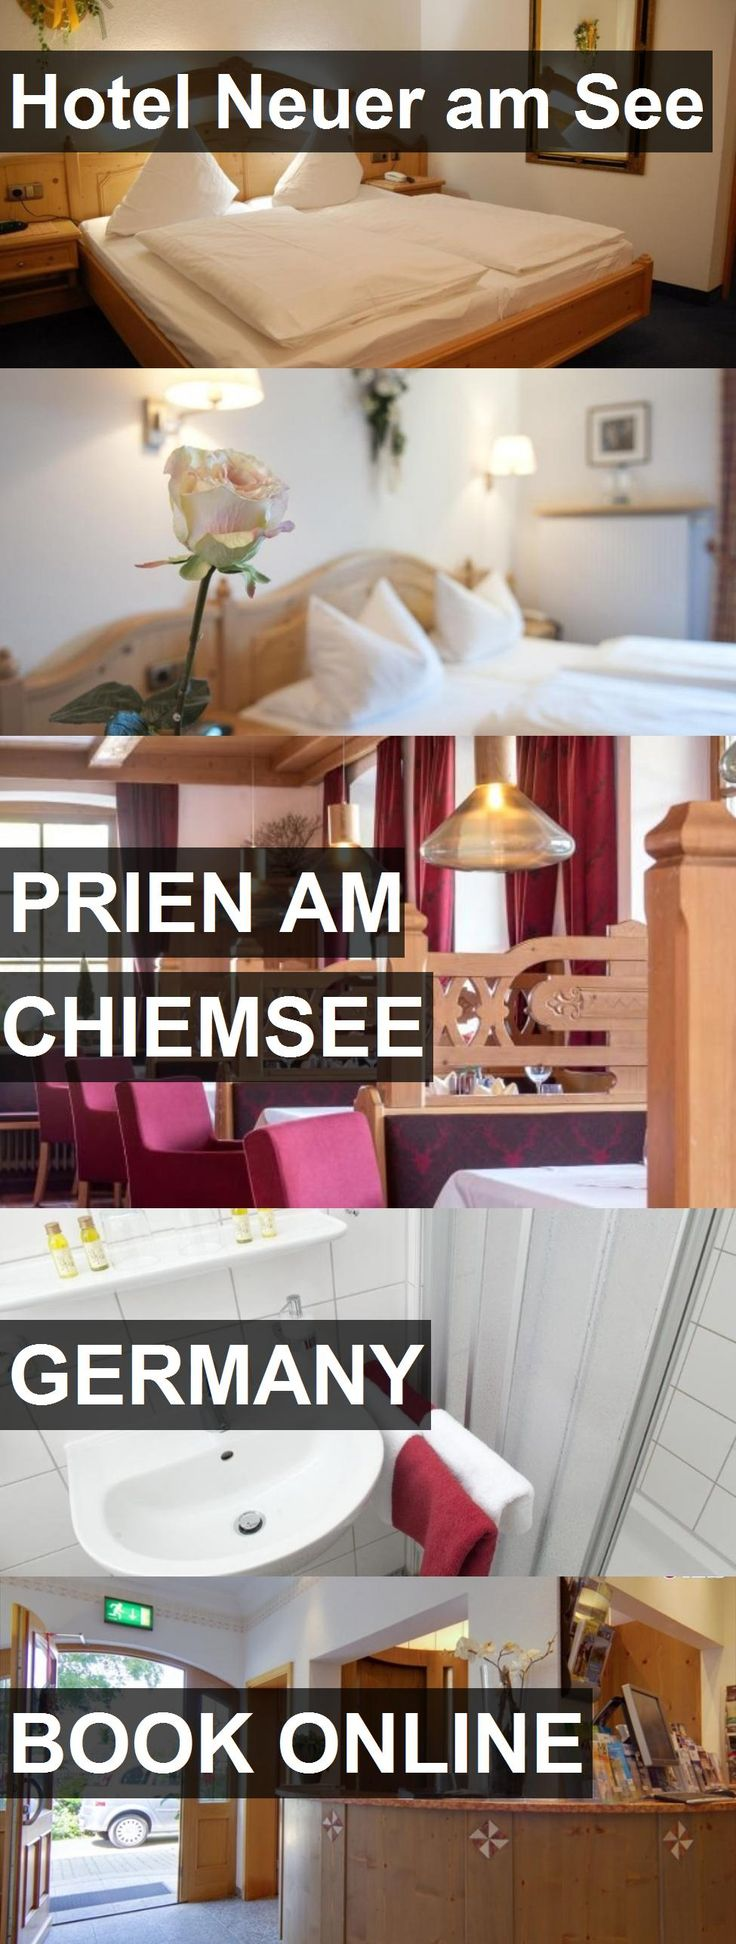 Hotel Neuer am See in Prien am Chiemsee, Germany. For more information, photos, reviews and best prices please follow the link. #Germany #PrienamChiemsee #travel #vacation #hotel